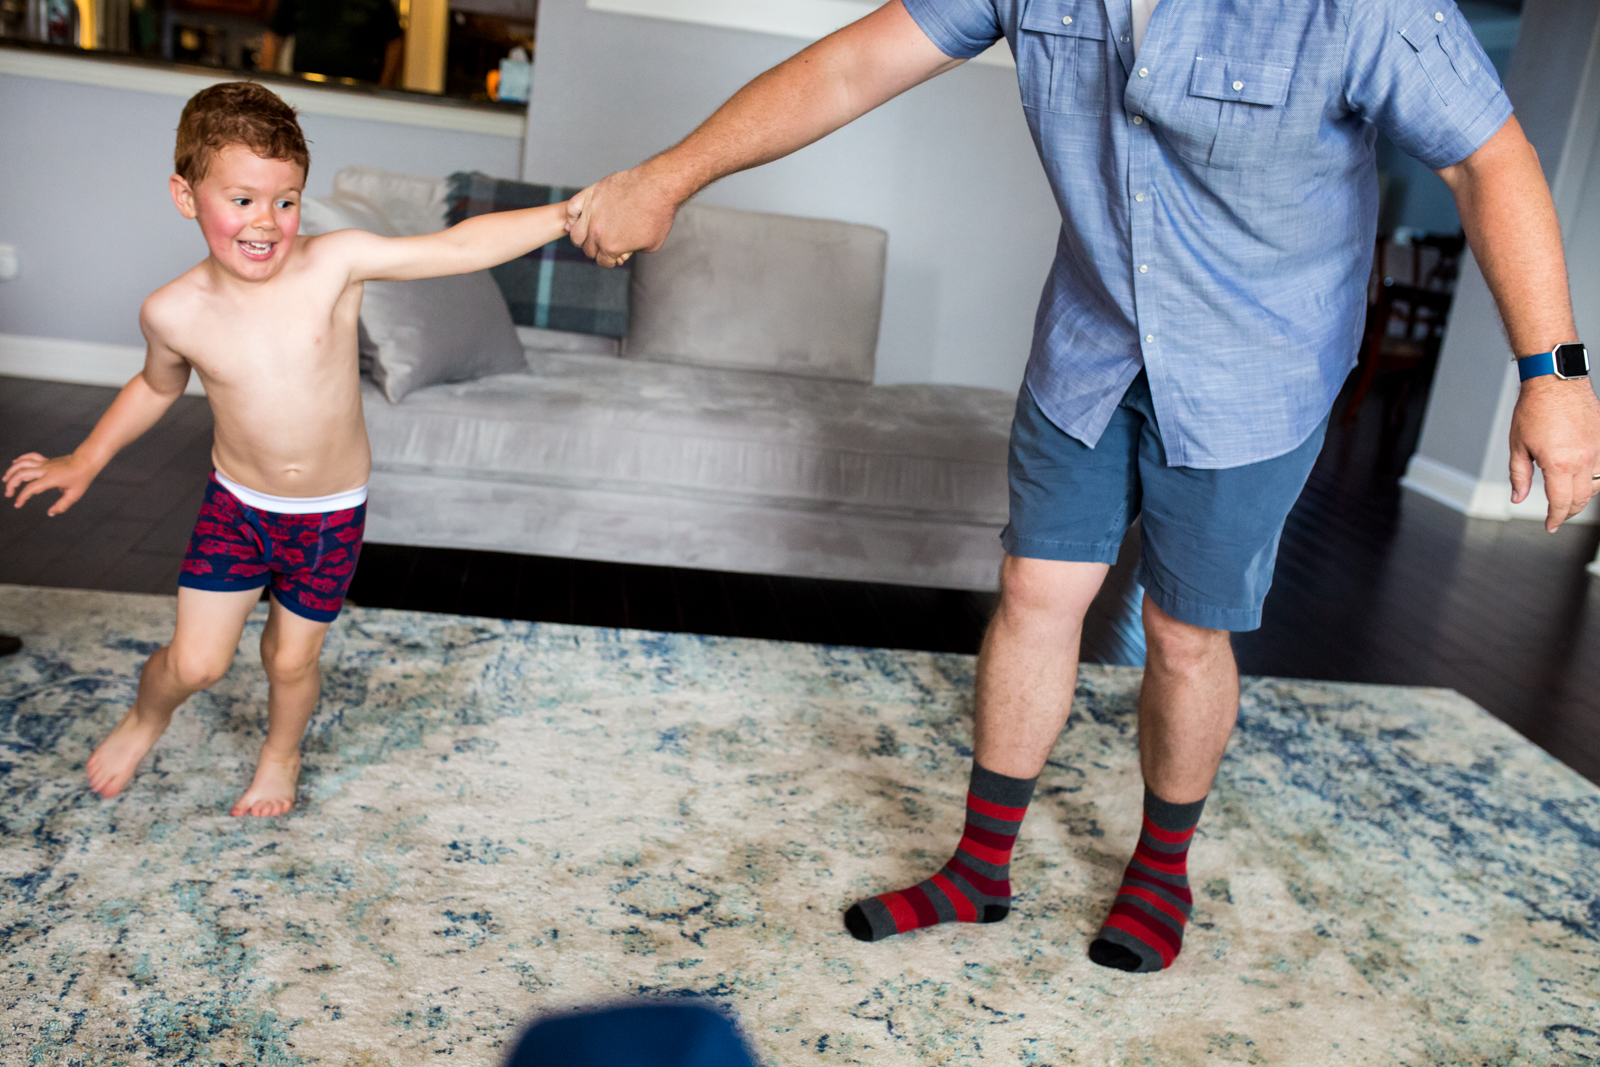 Lawren Rose Photography takes a quick photograph of a father and his son having a dance party in the living room during a maternity session in McKinney